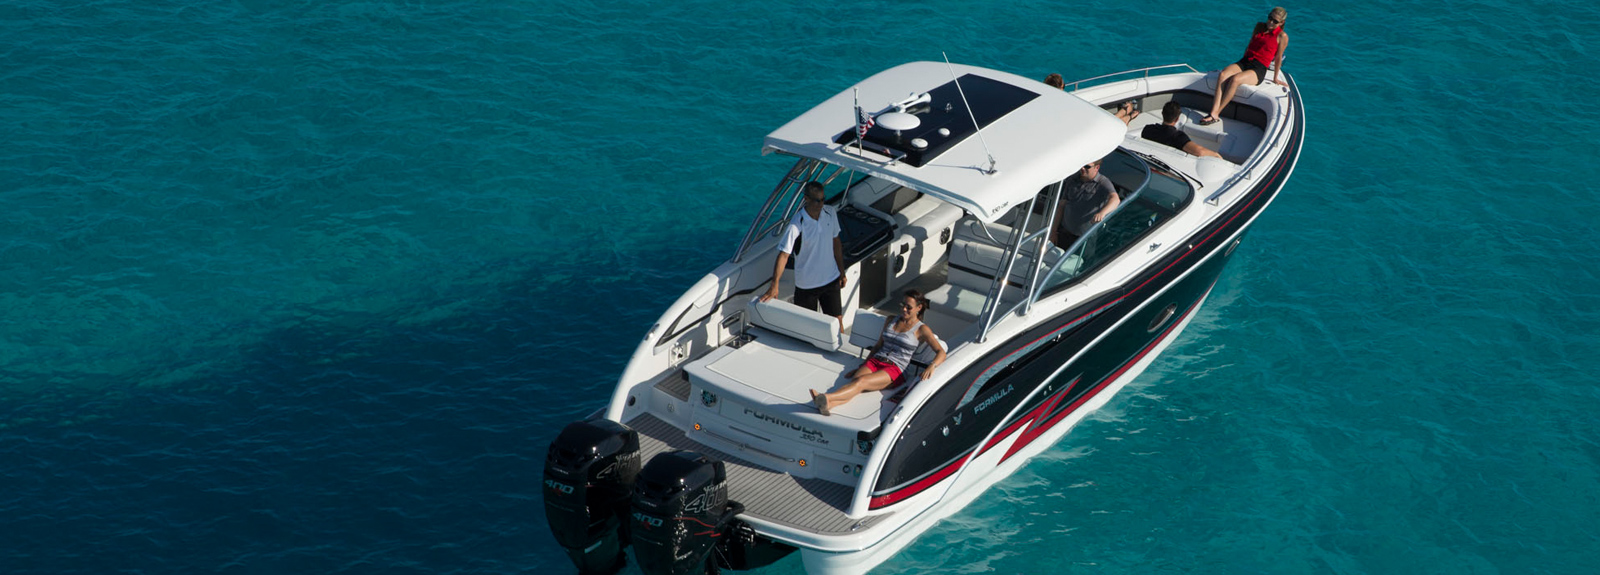 The New Formula 350 Cbr Outboard Truly The Most Versatile Boat On The Water Formula Boats